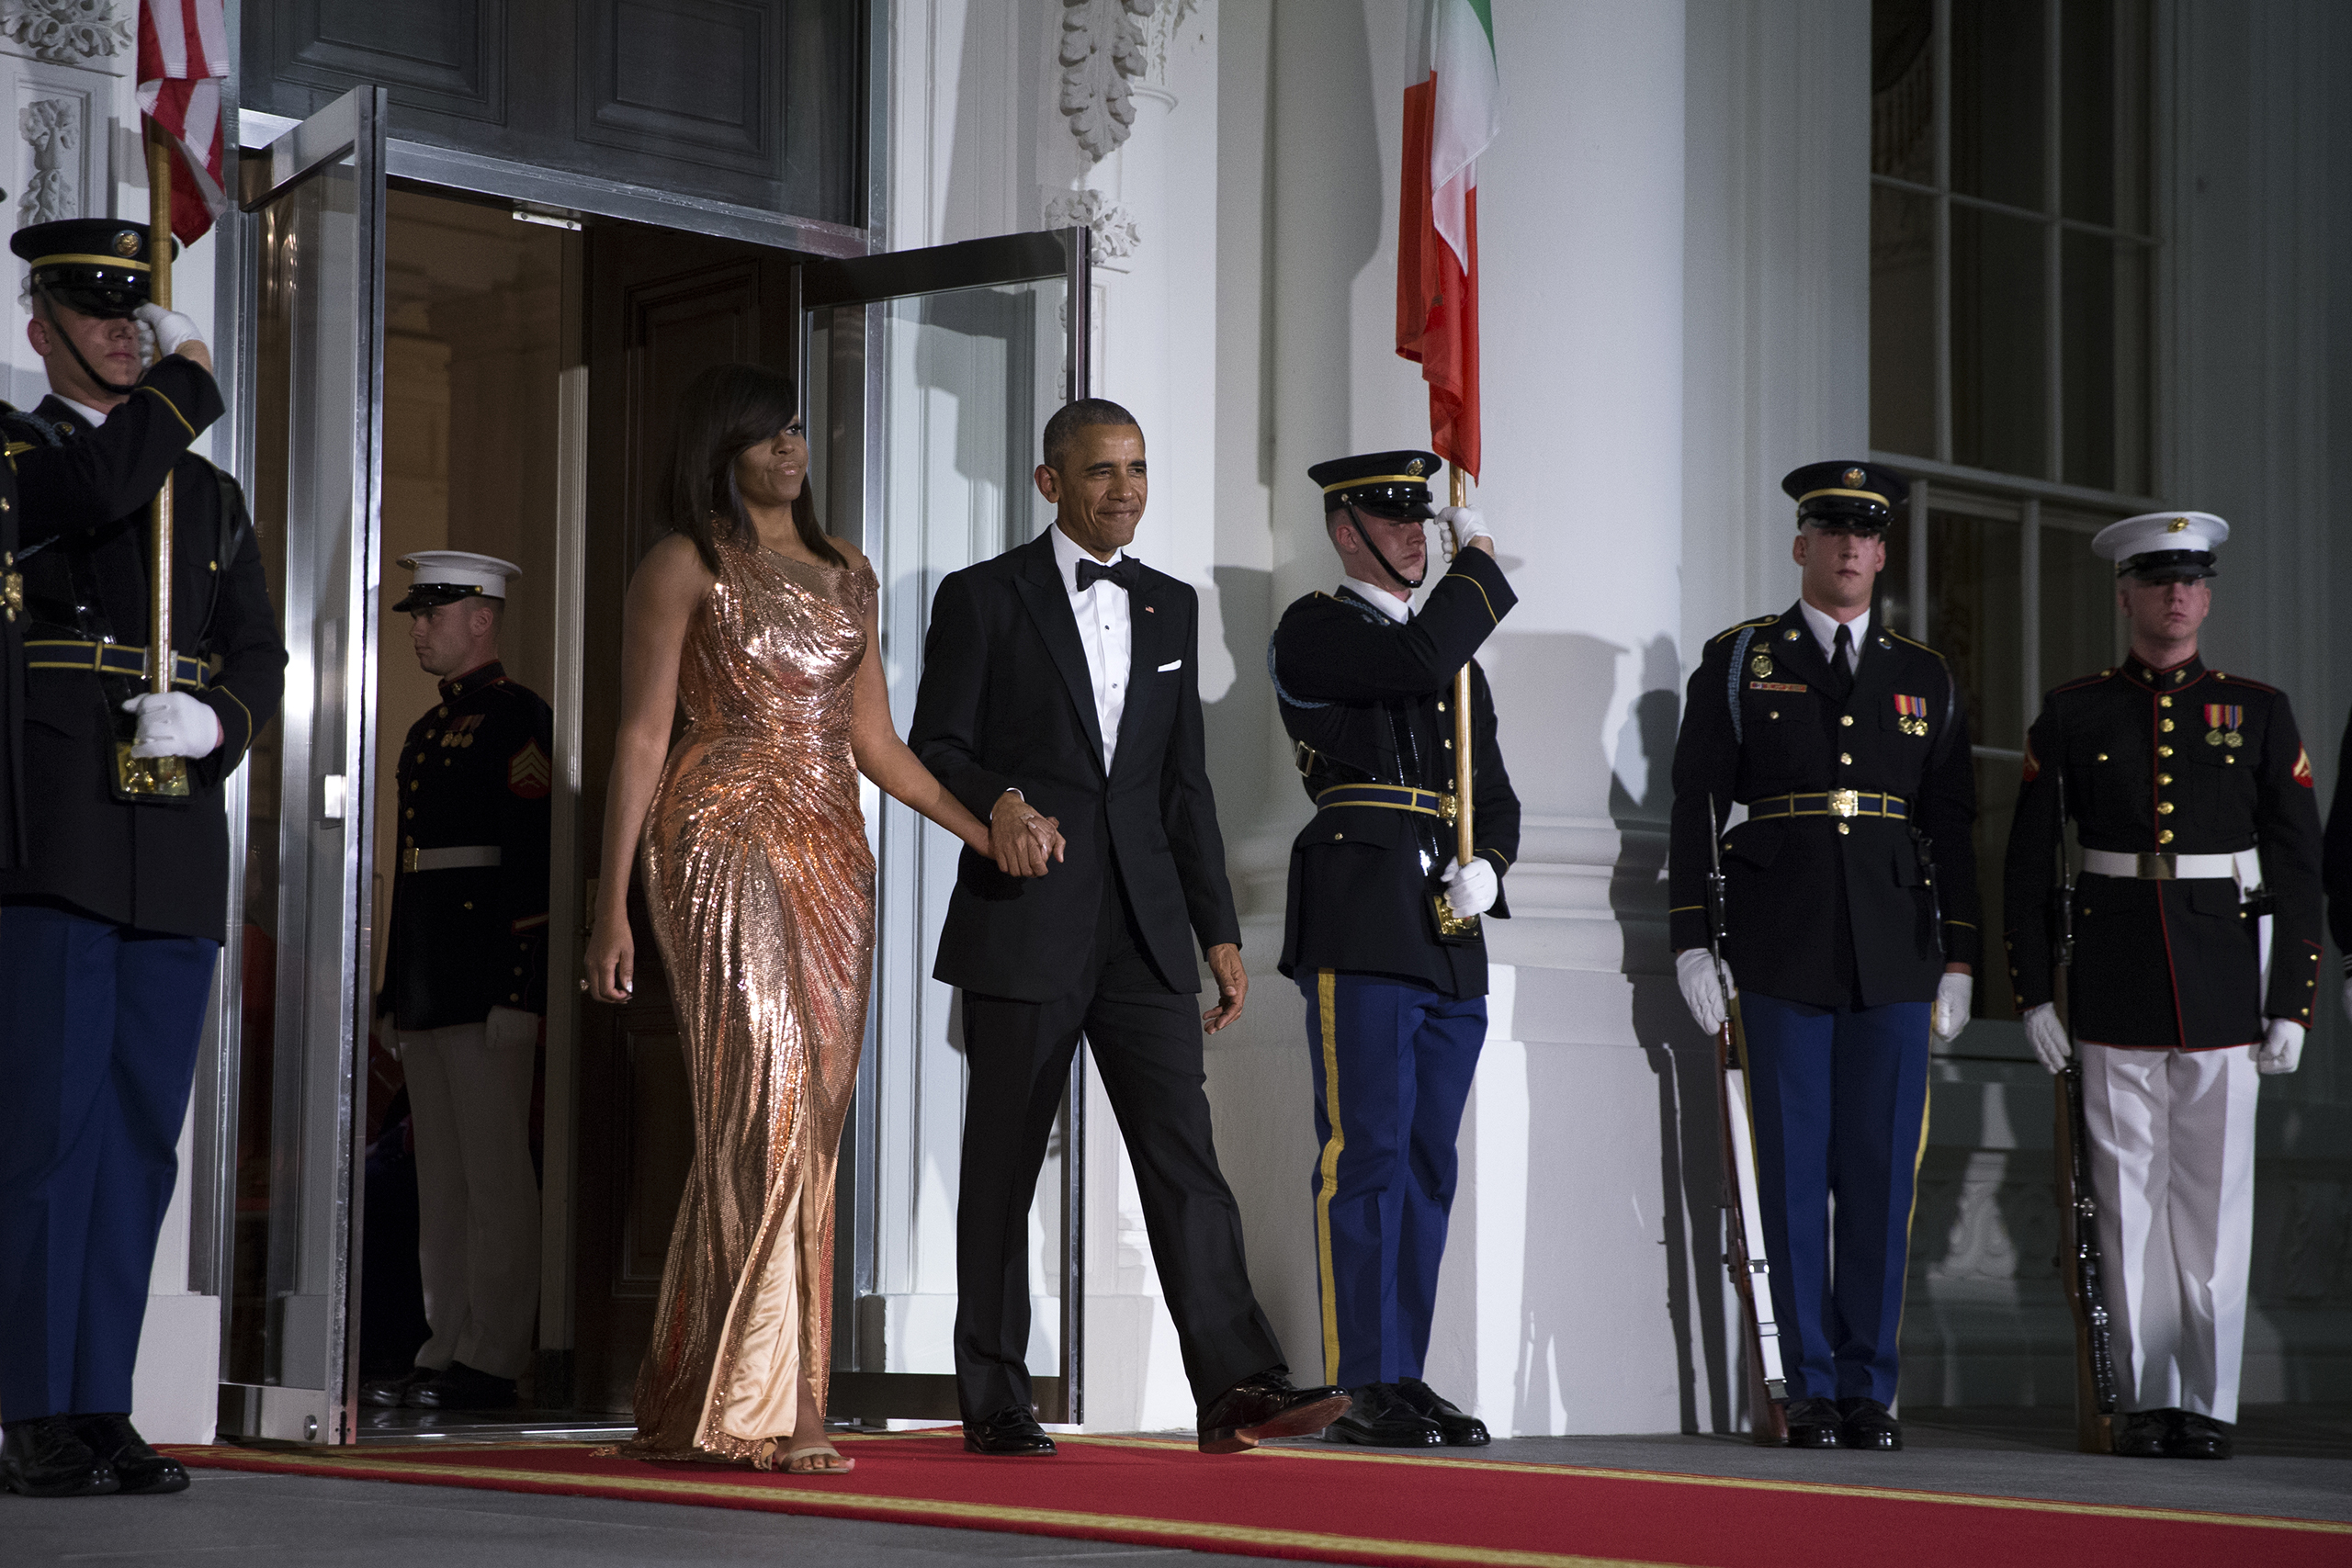 Barack Obama and Michelle Obama walk outside to greet Italian Prime Minister Matteo Renzi and Italian First Lady Agnese Landini prior to the state dinner at the White House in Washington, D.C., on Oct. 18, 2016.